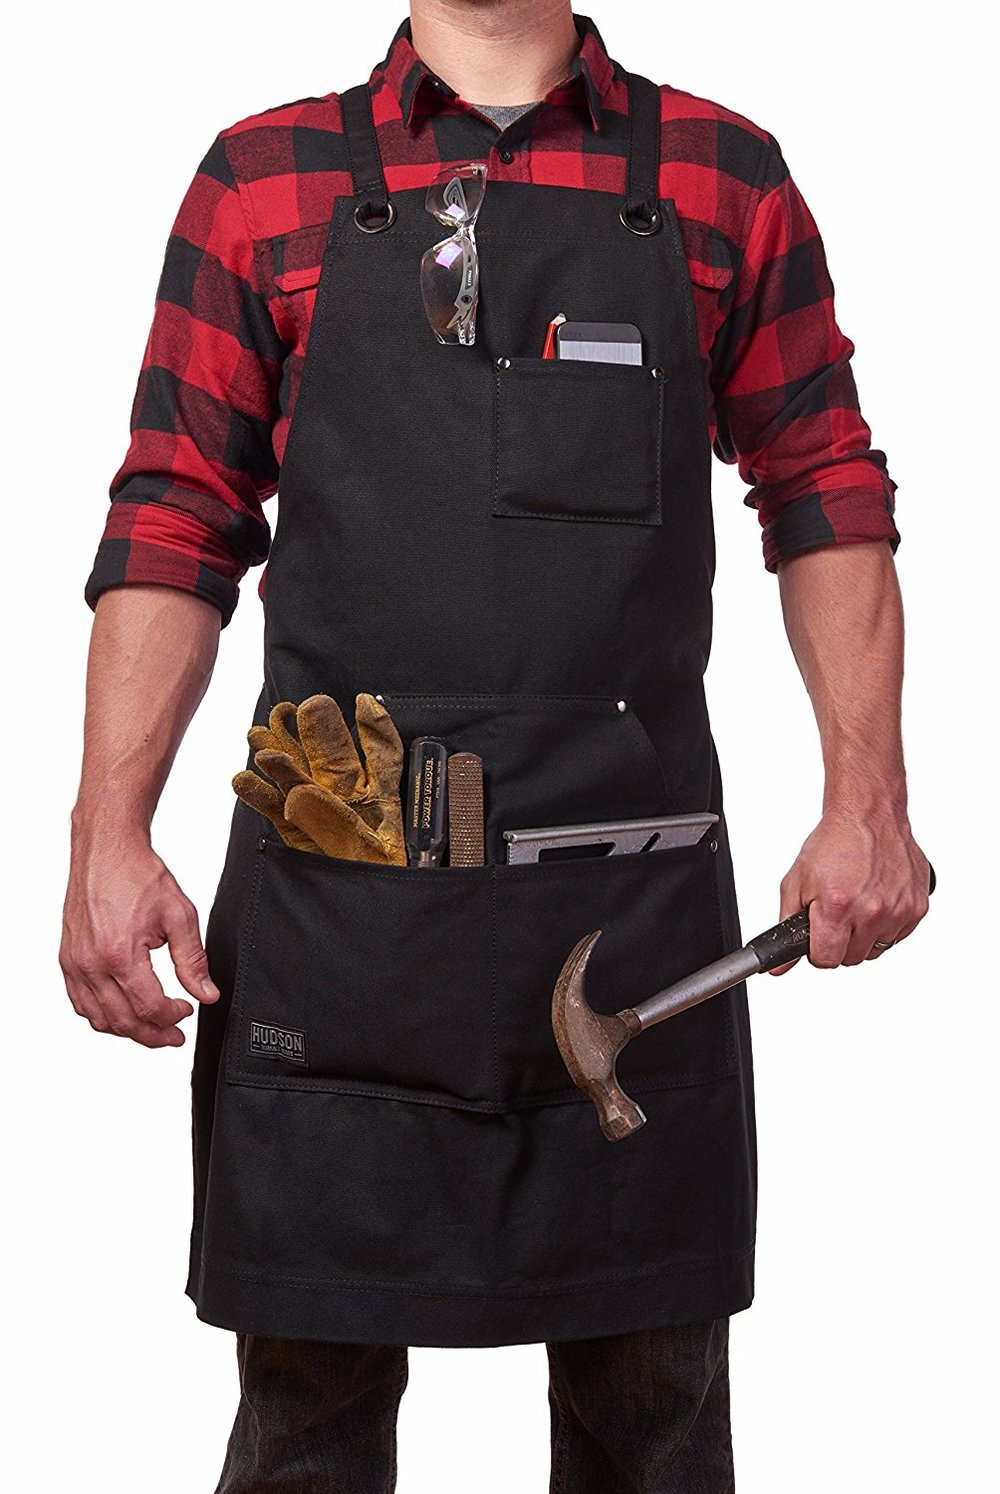 Hudson Durable Goods - Heavy Duty Waxed Canvas Work Apron with Tool Pockets (Black),$31.95